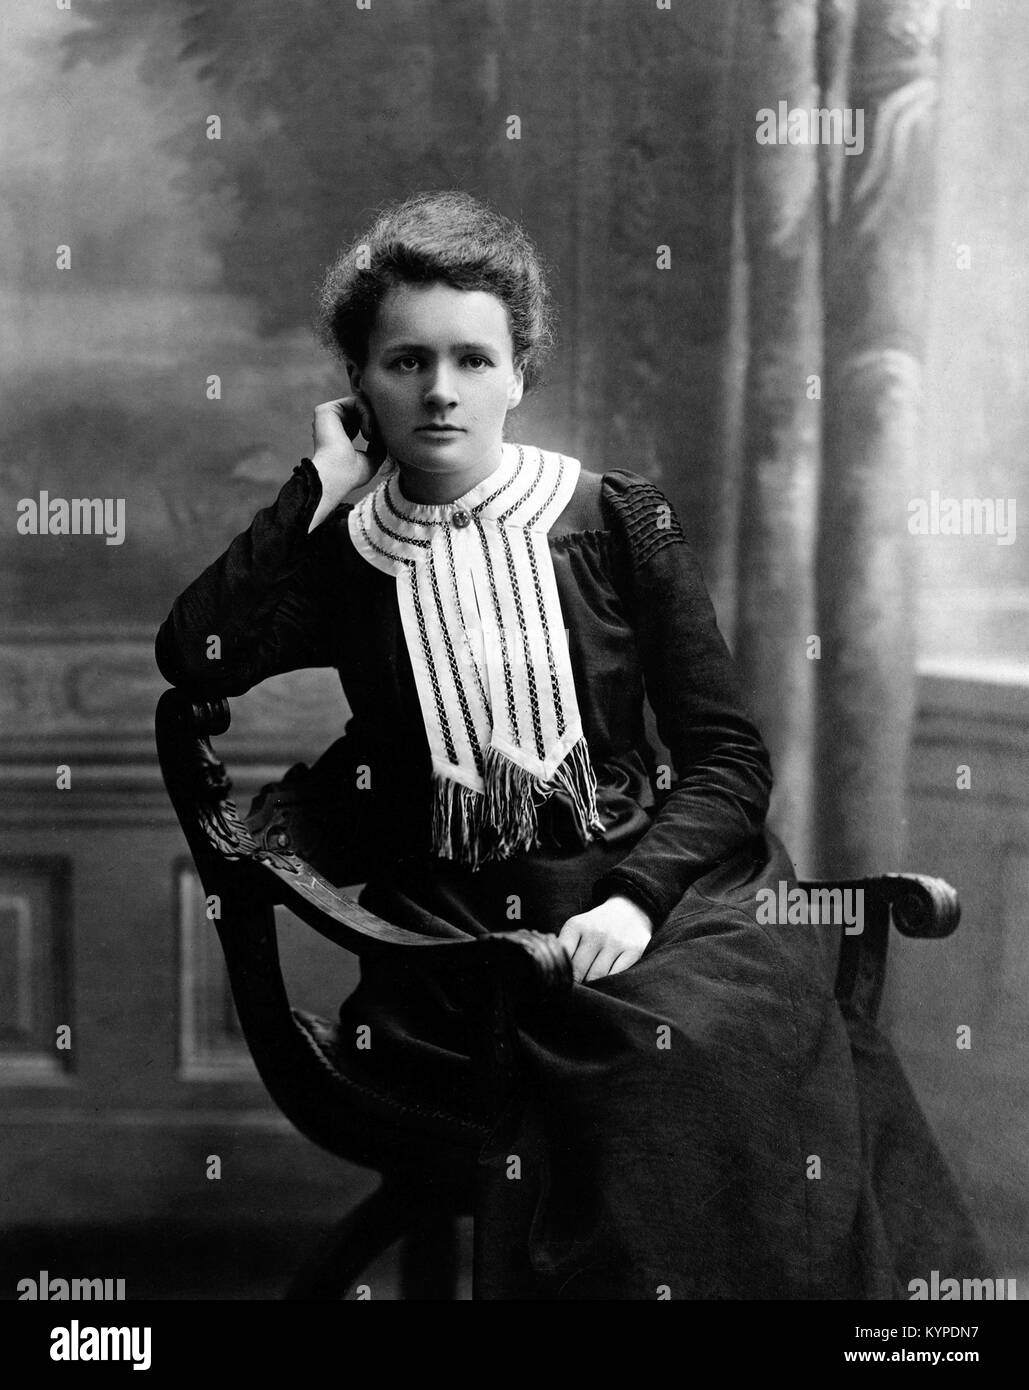 Marie Curie. The Nobel prize winning scientist, Marie Sklodowska Curie (1867-1934). Photo c.1903 Stock Photo